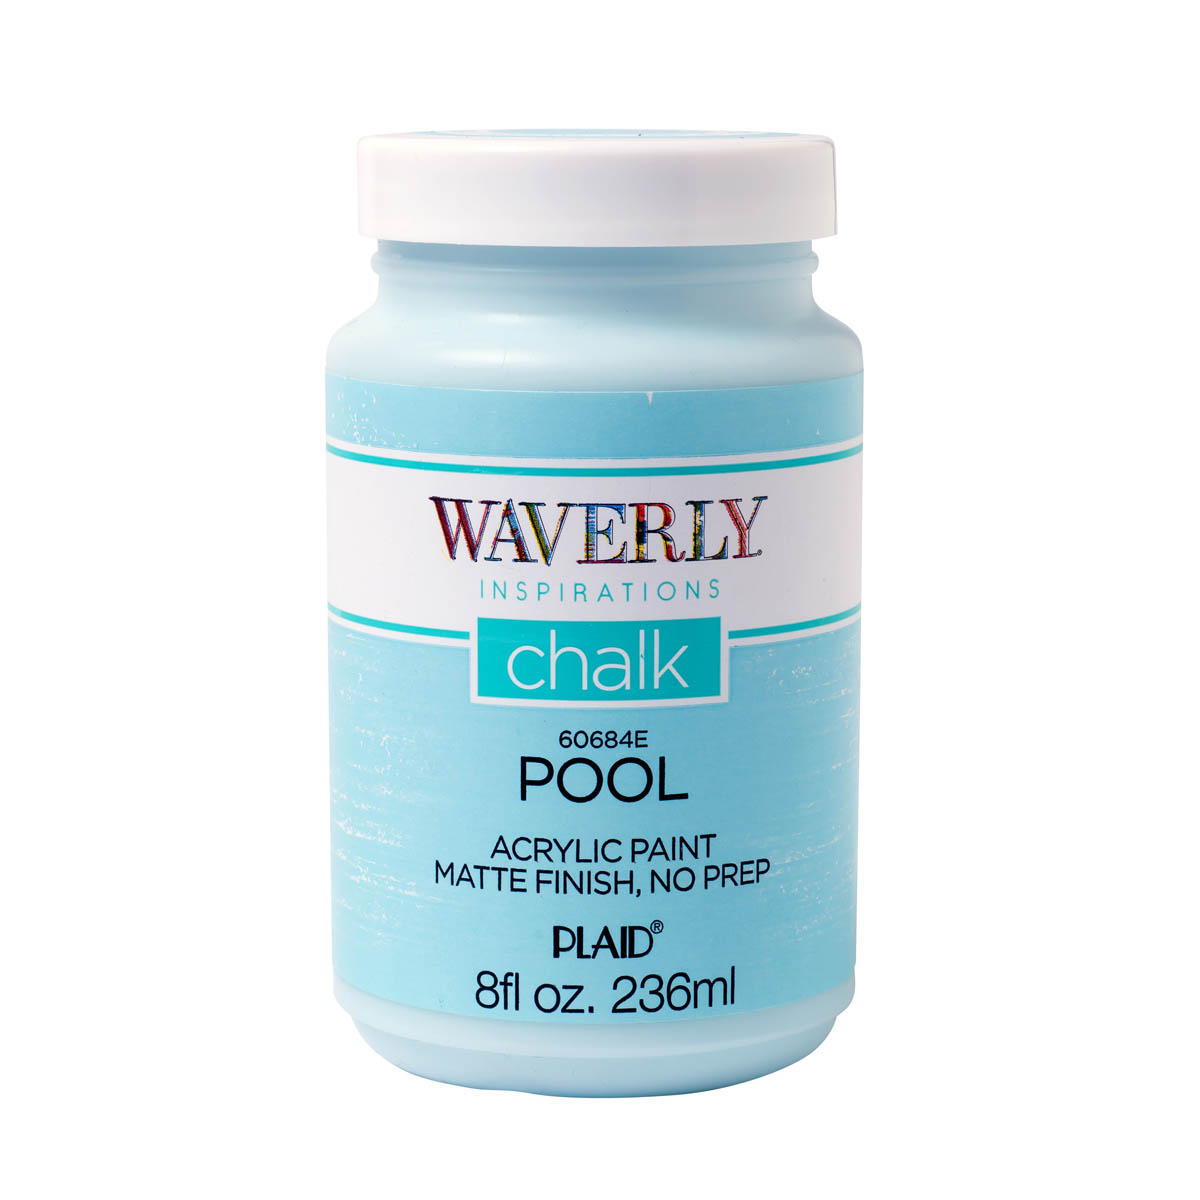 Waverly ® Inspirations Chalk Acrylic Paint - Pool, 8 oz. - 60684E